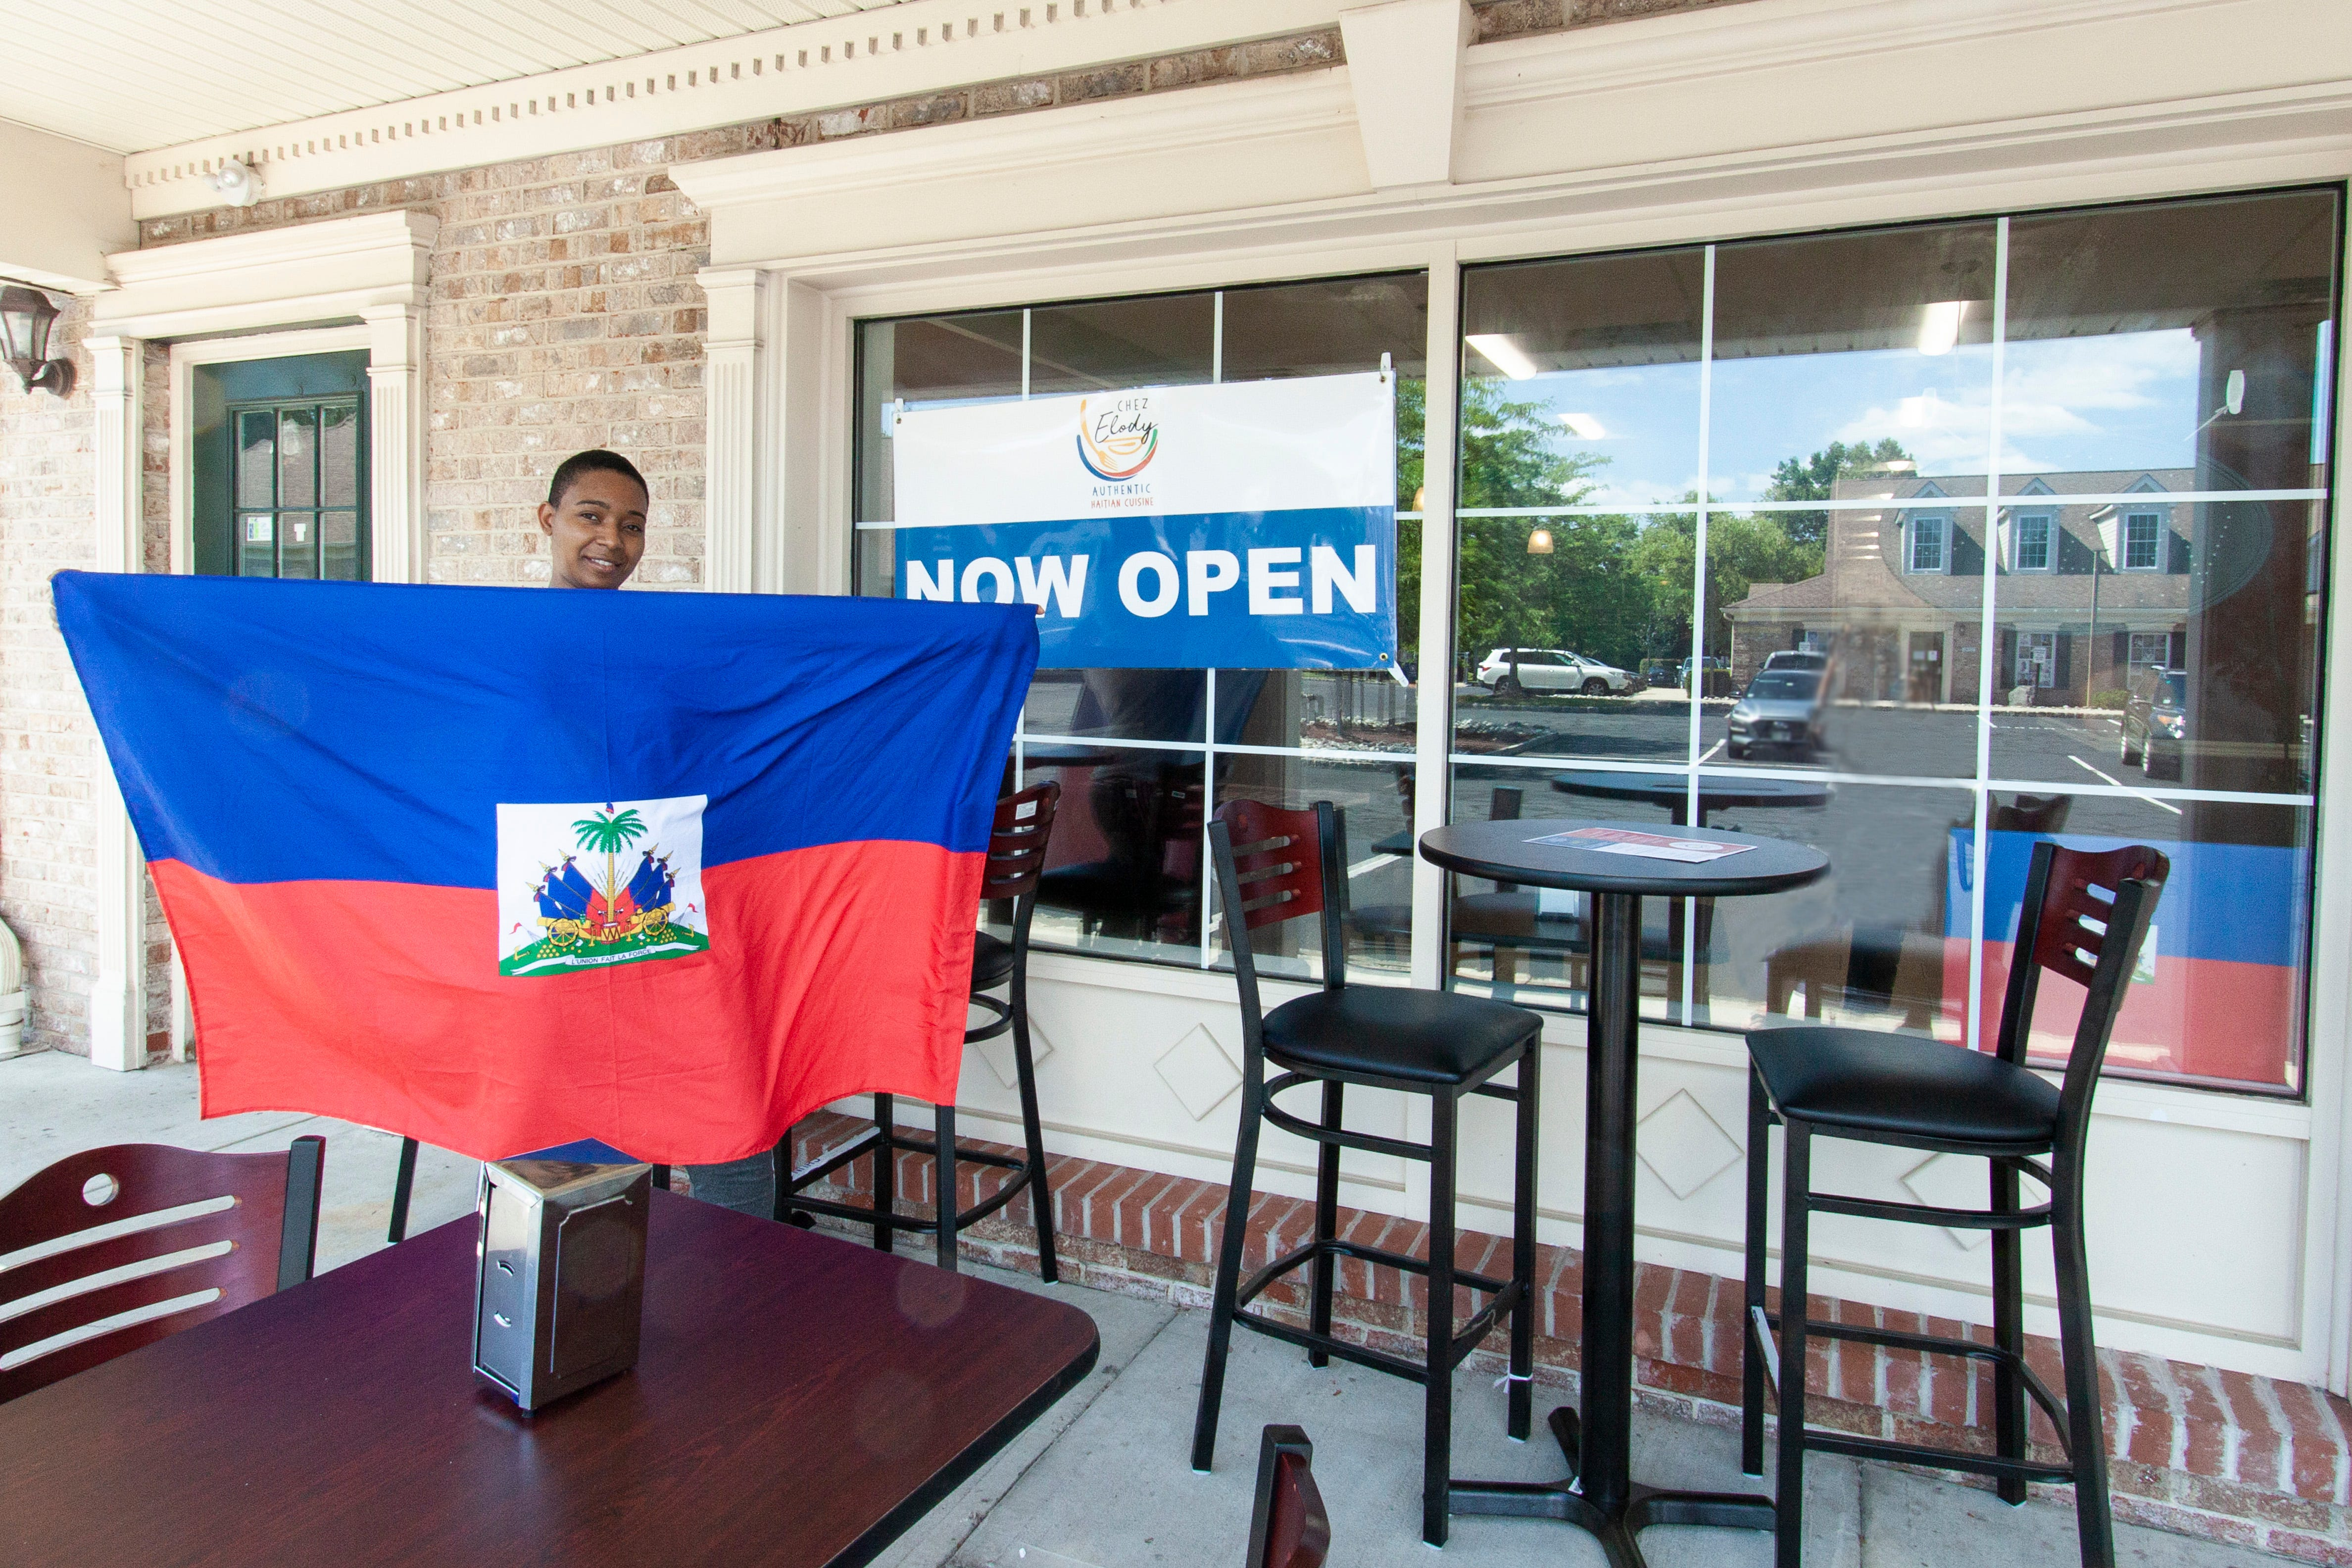 A new Haitian restaurant Chez Elody has opened at 378 South Branch Road in Hillsborough. Co-owner Diane Henry is pictured with te Haitian flag.